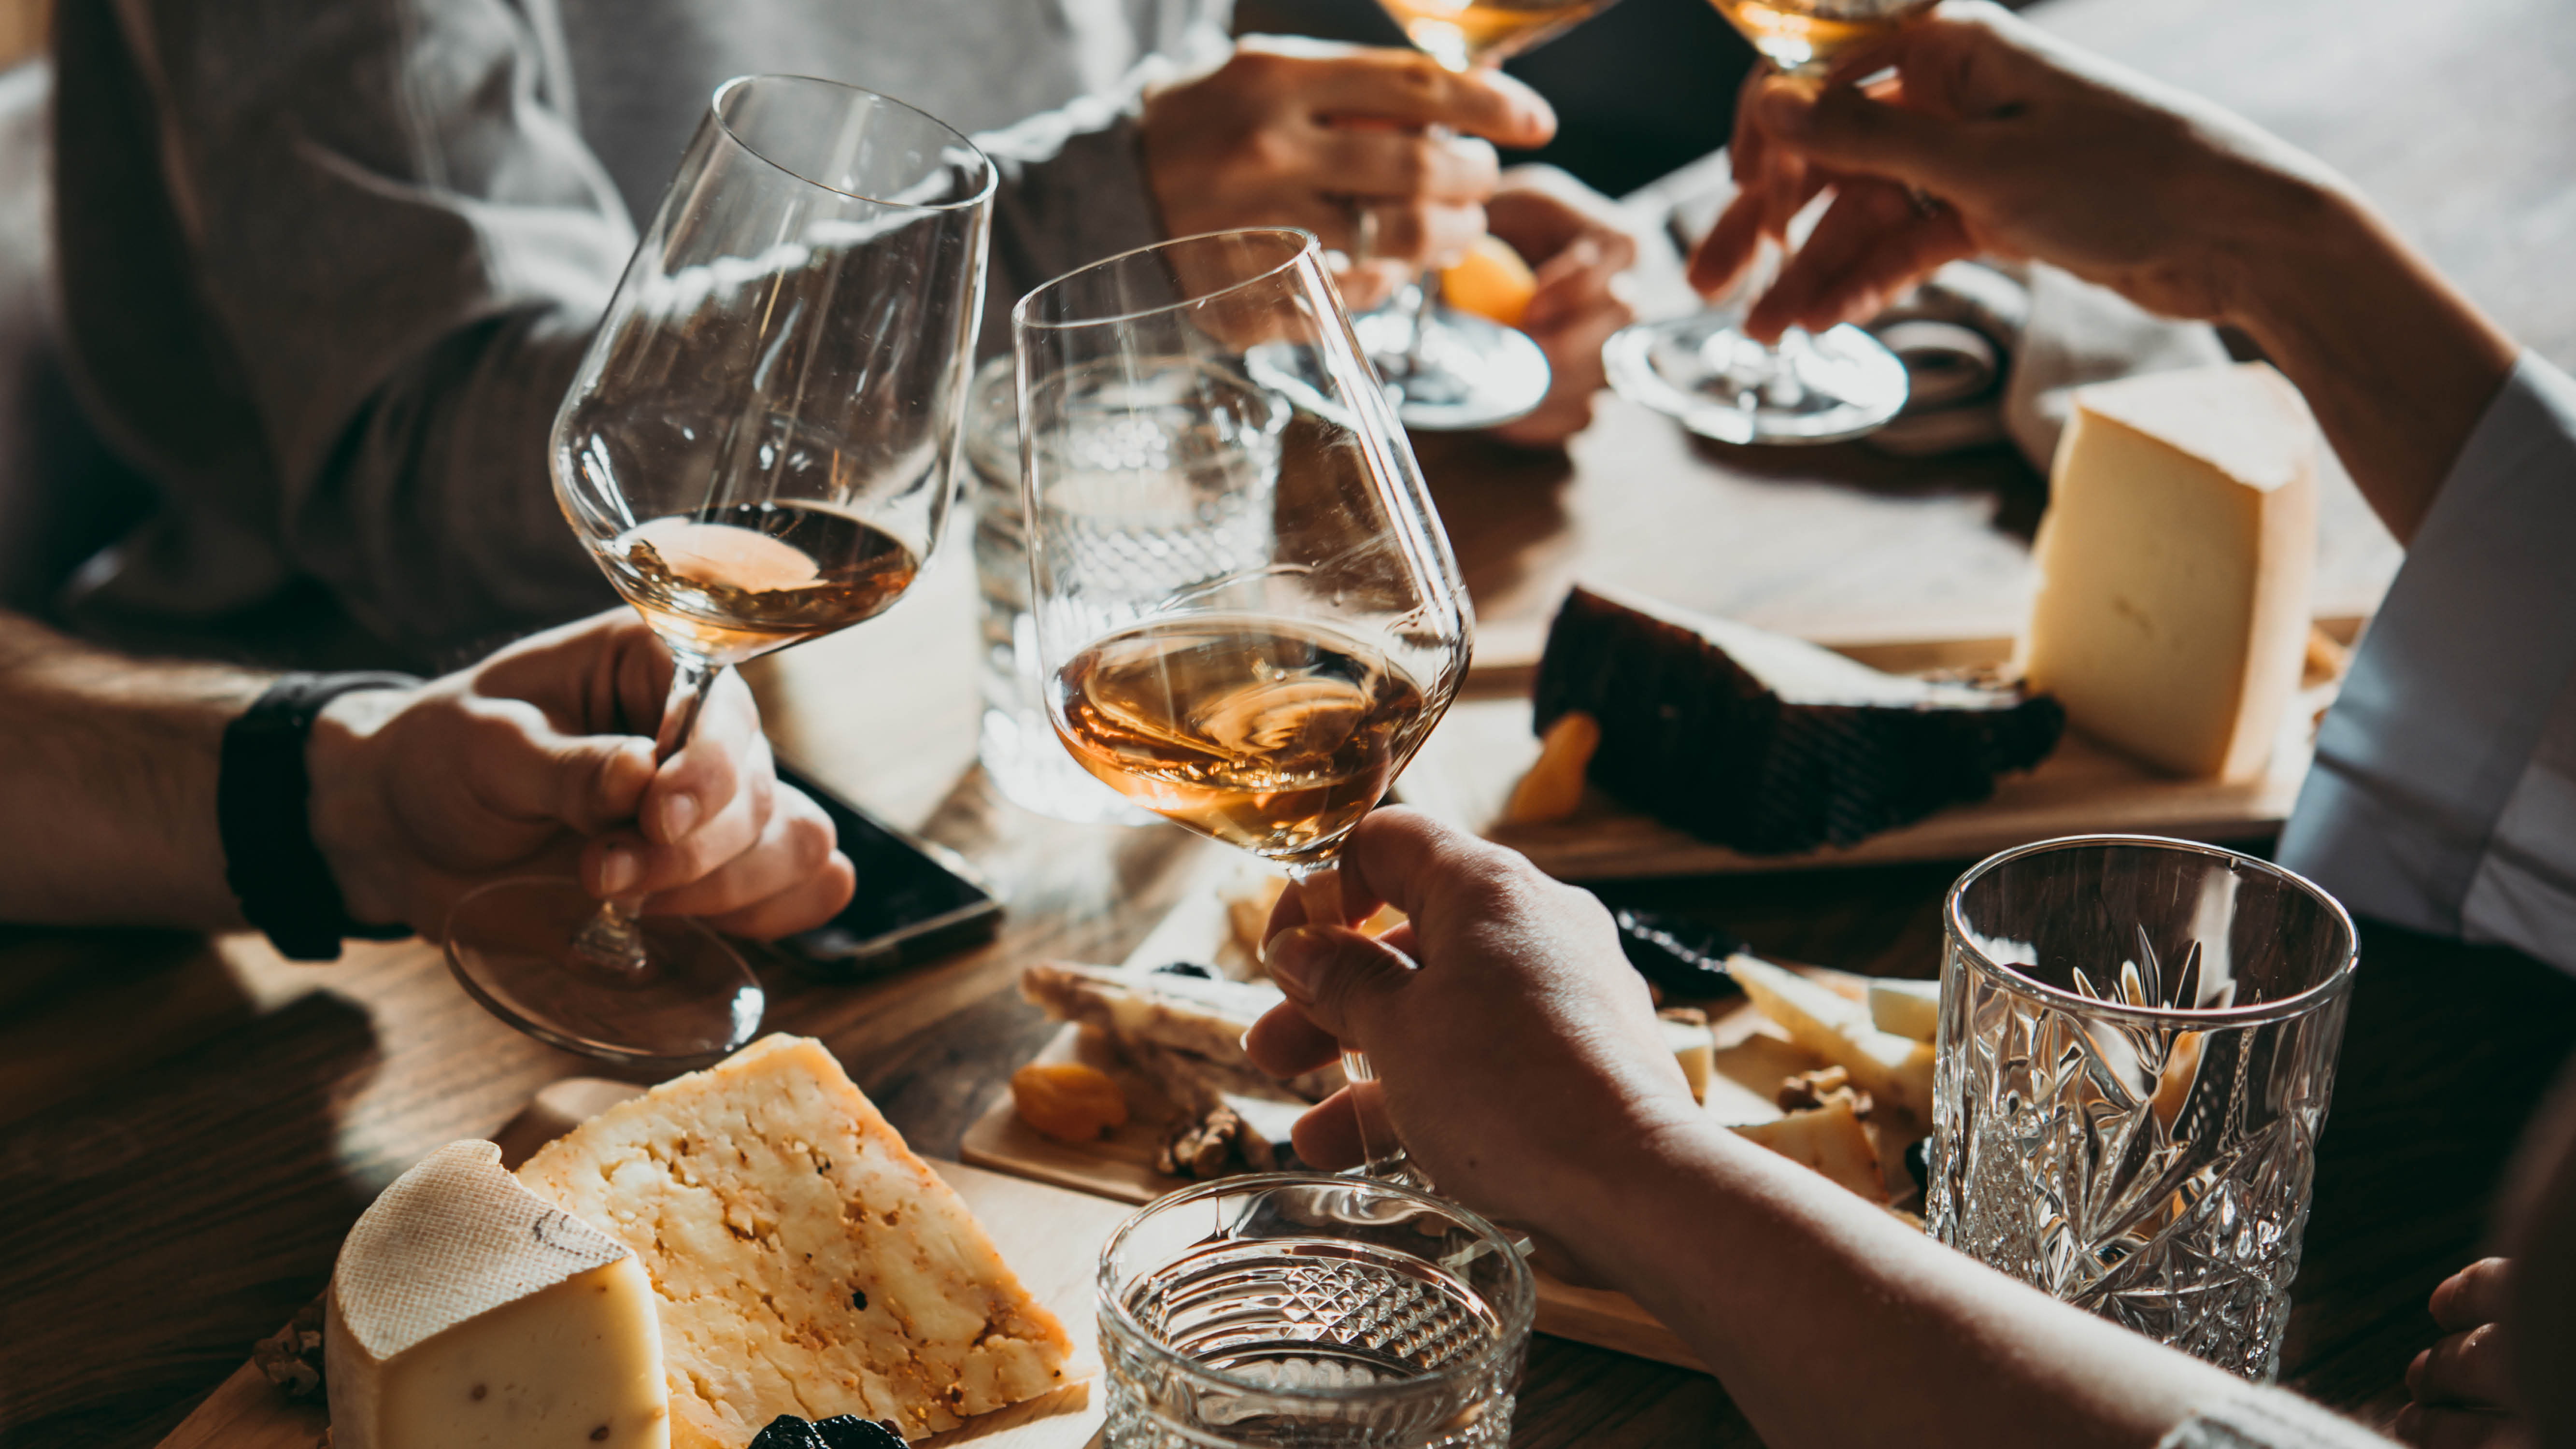 lifestyle-white-wine-glass-toast-over-cheese-board-close-up.jpg